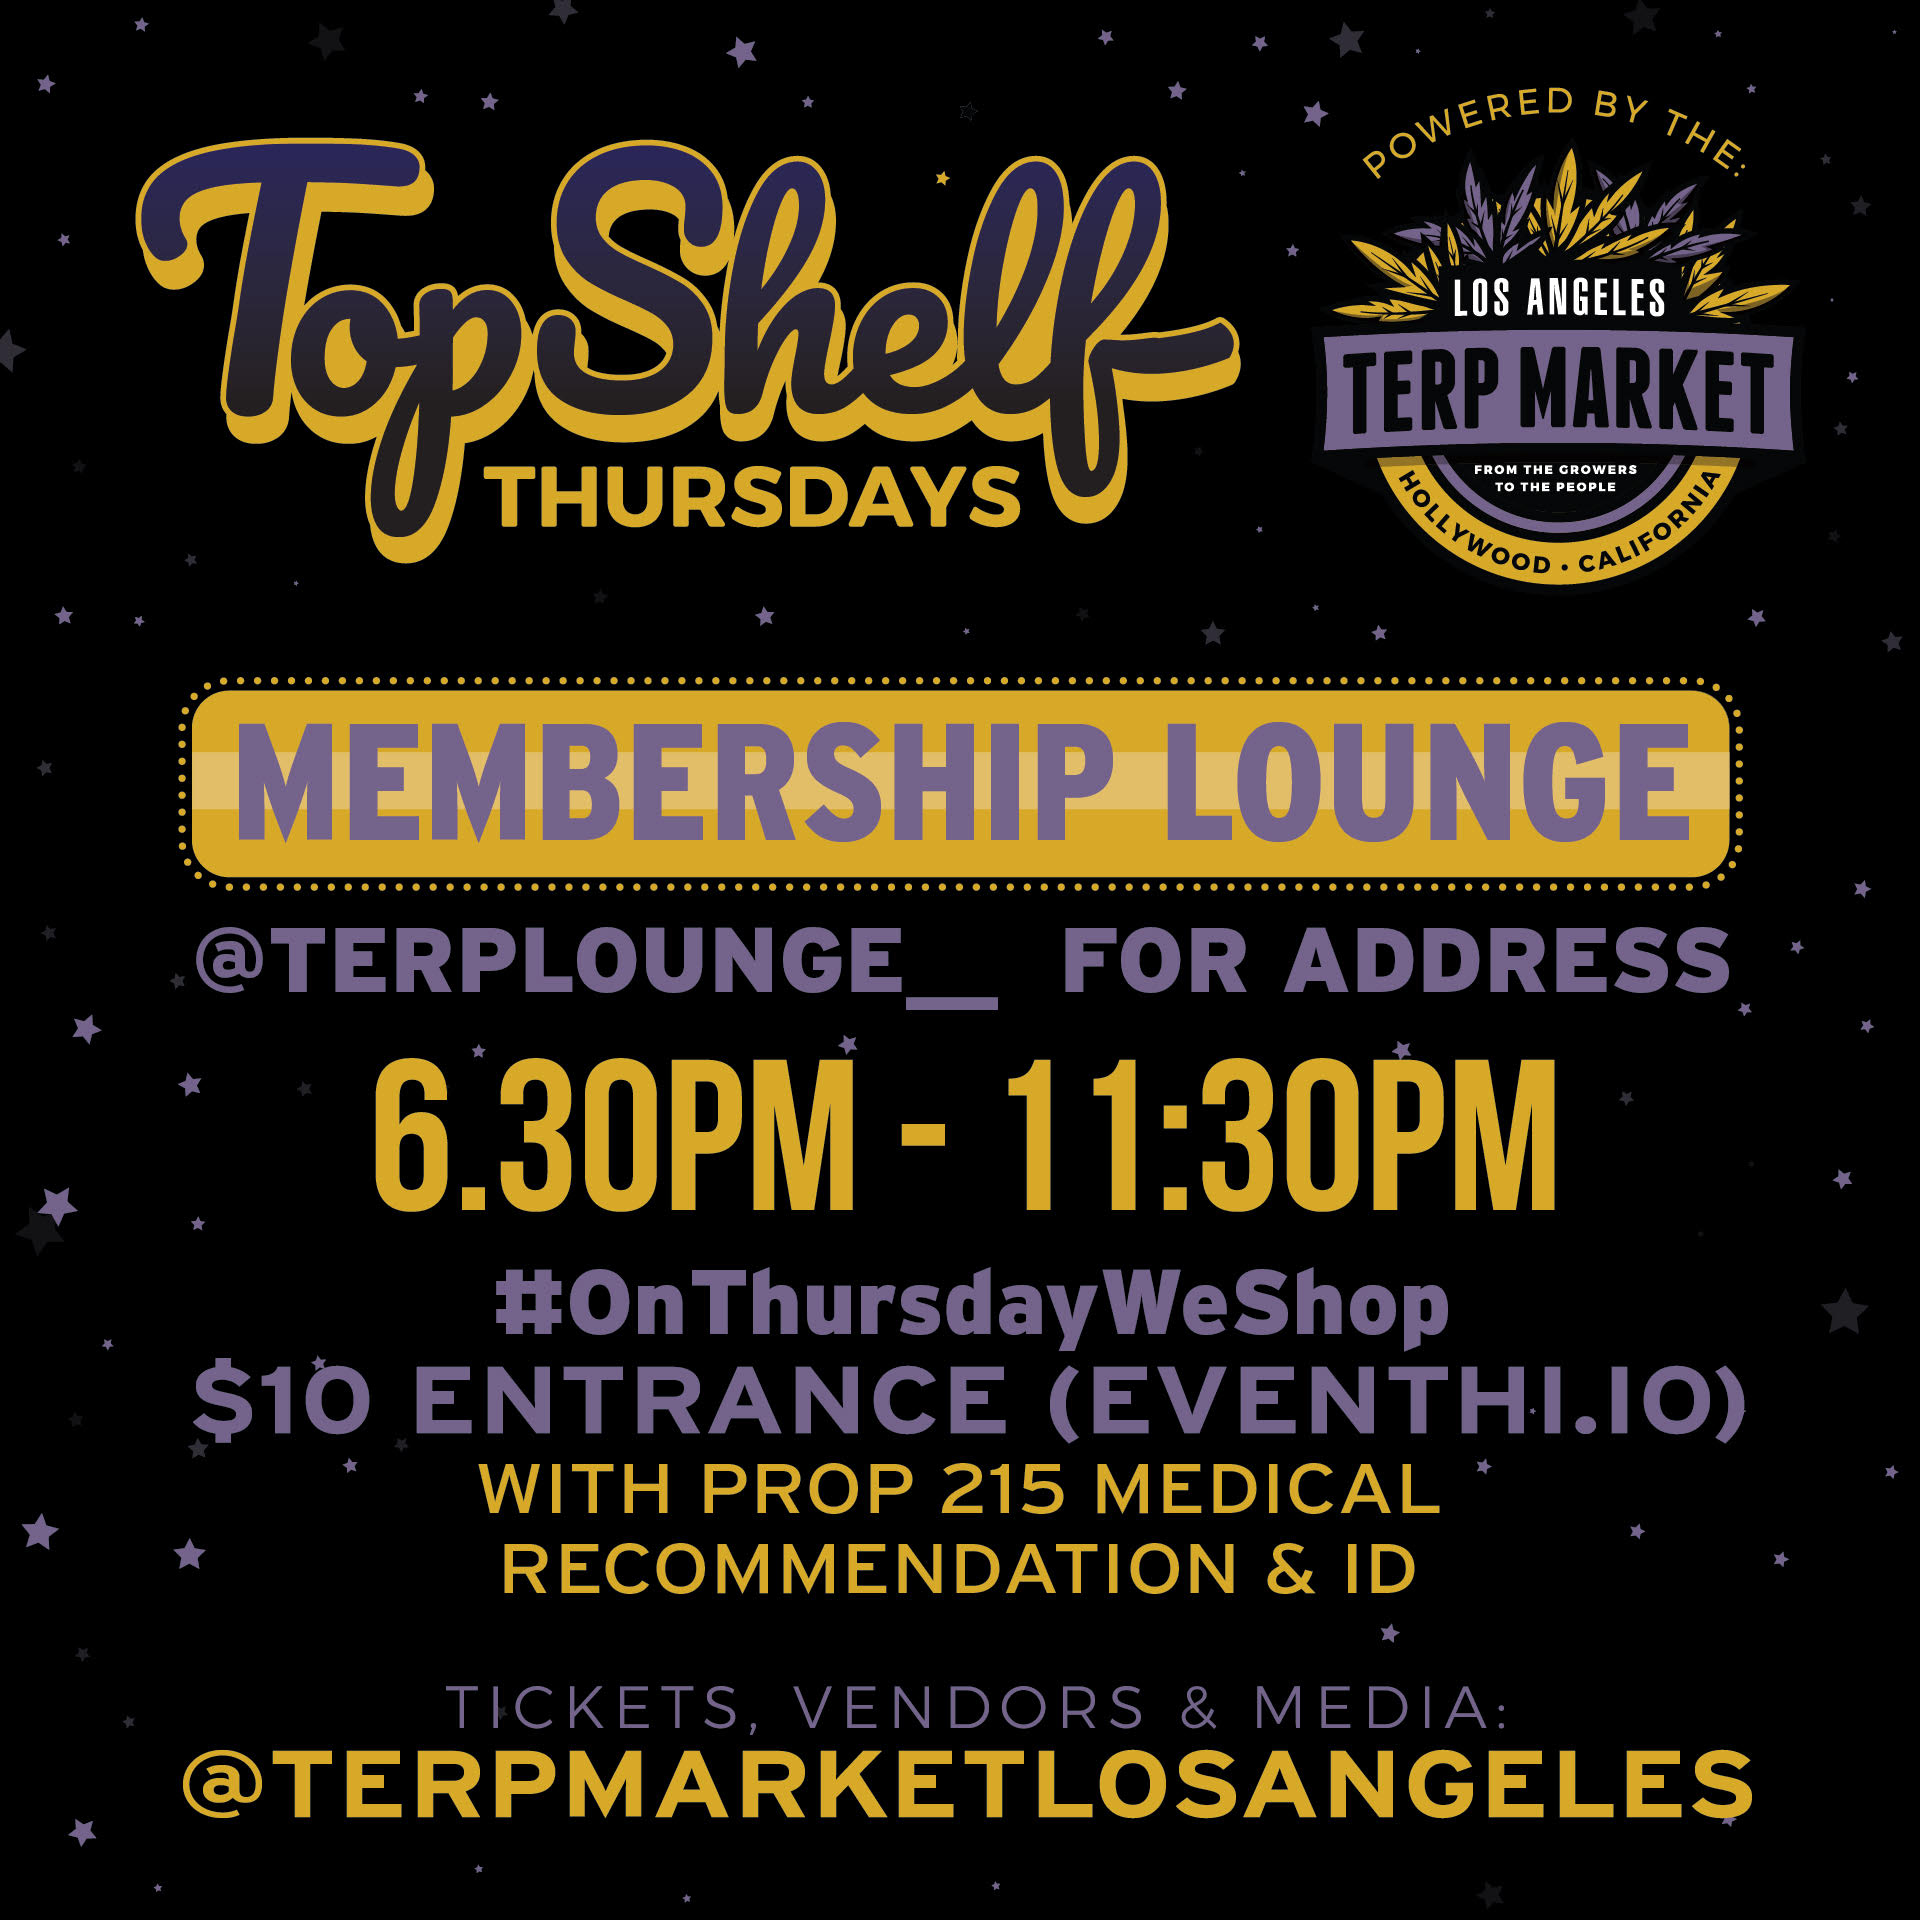 Terp Market Top Shelf Thursday Los Angeles 5/23